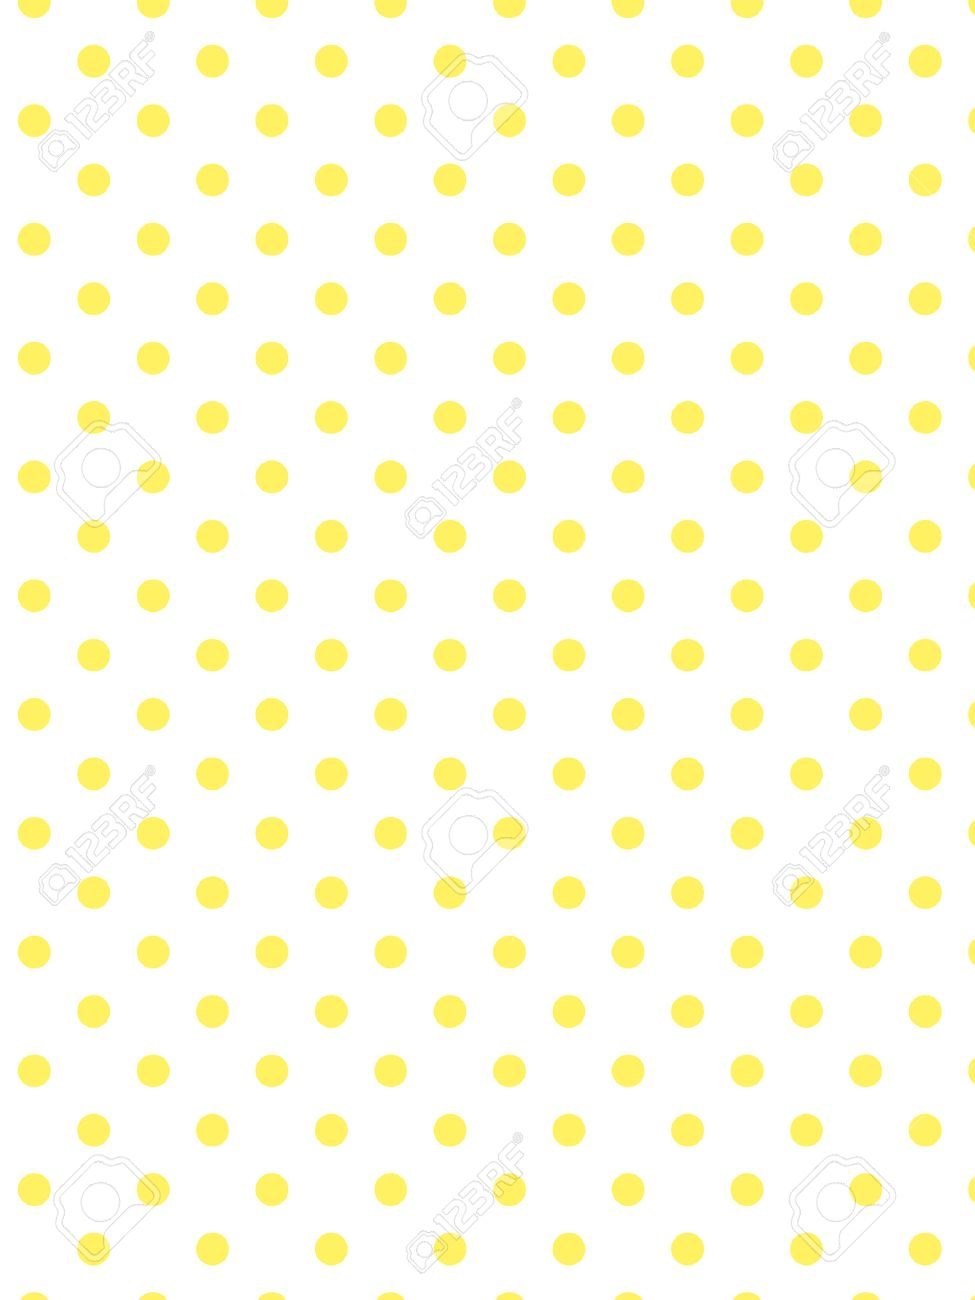 vector white background with yellow polka dots